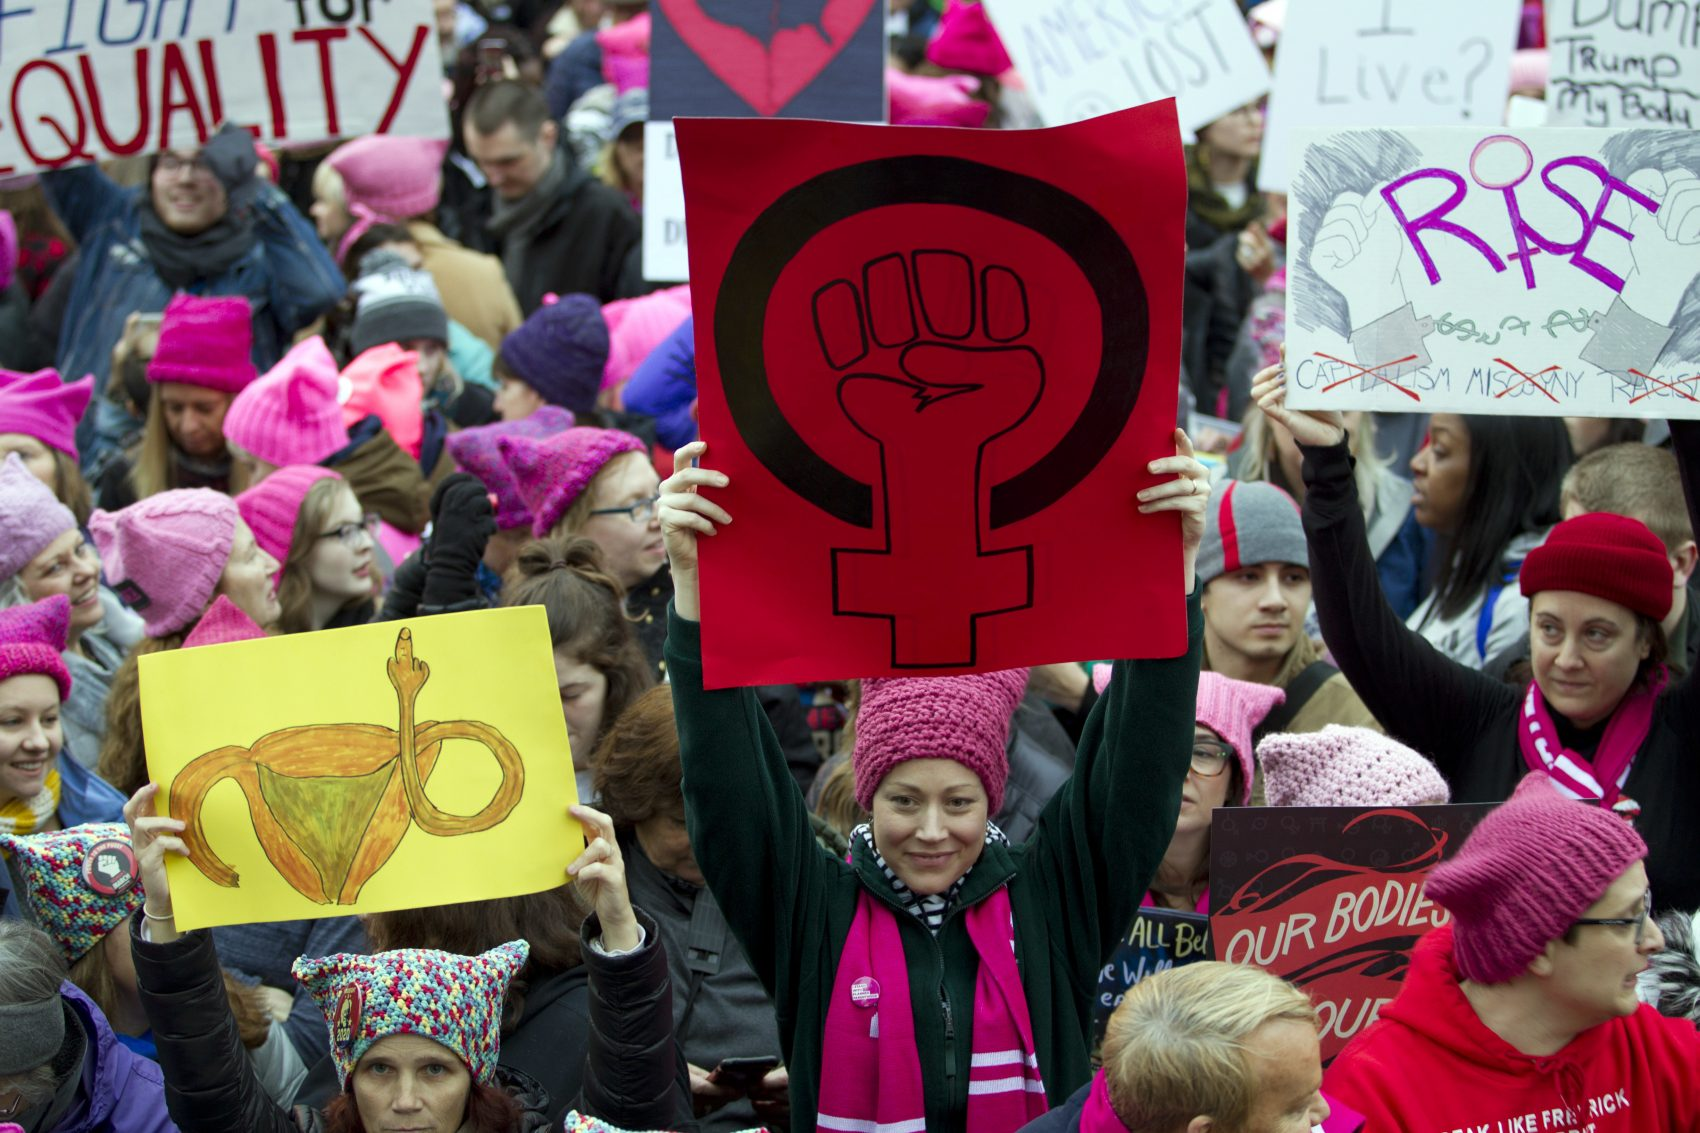 Protesters gathered in Washington, D.C. Saturday morning for the Women's March on Washington. (Jose Luis Magana/AP)